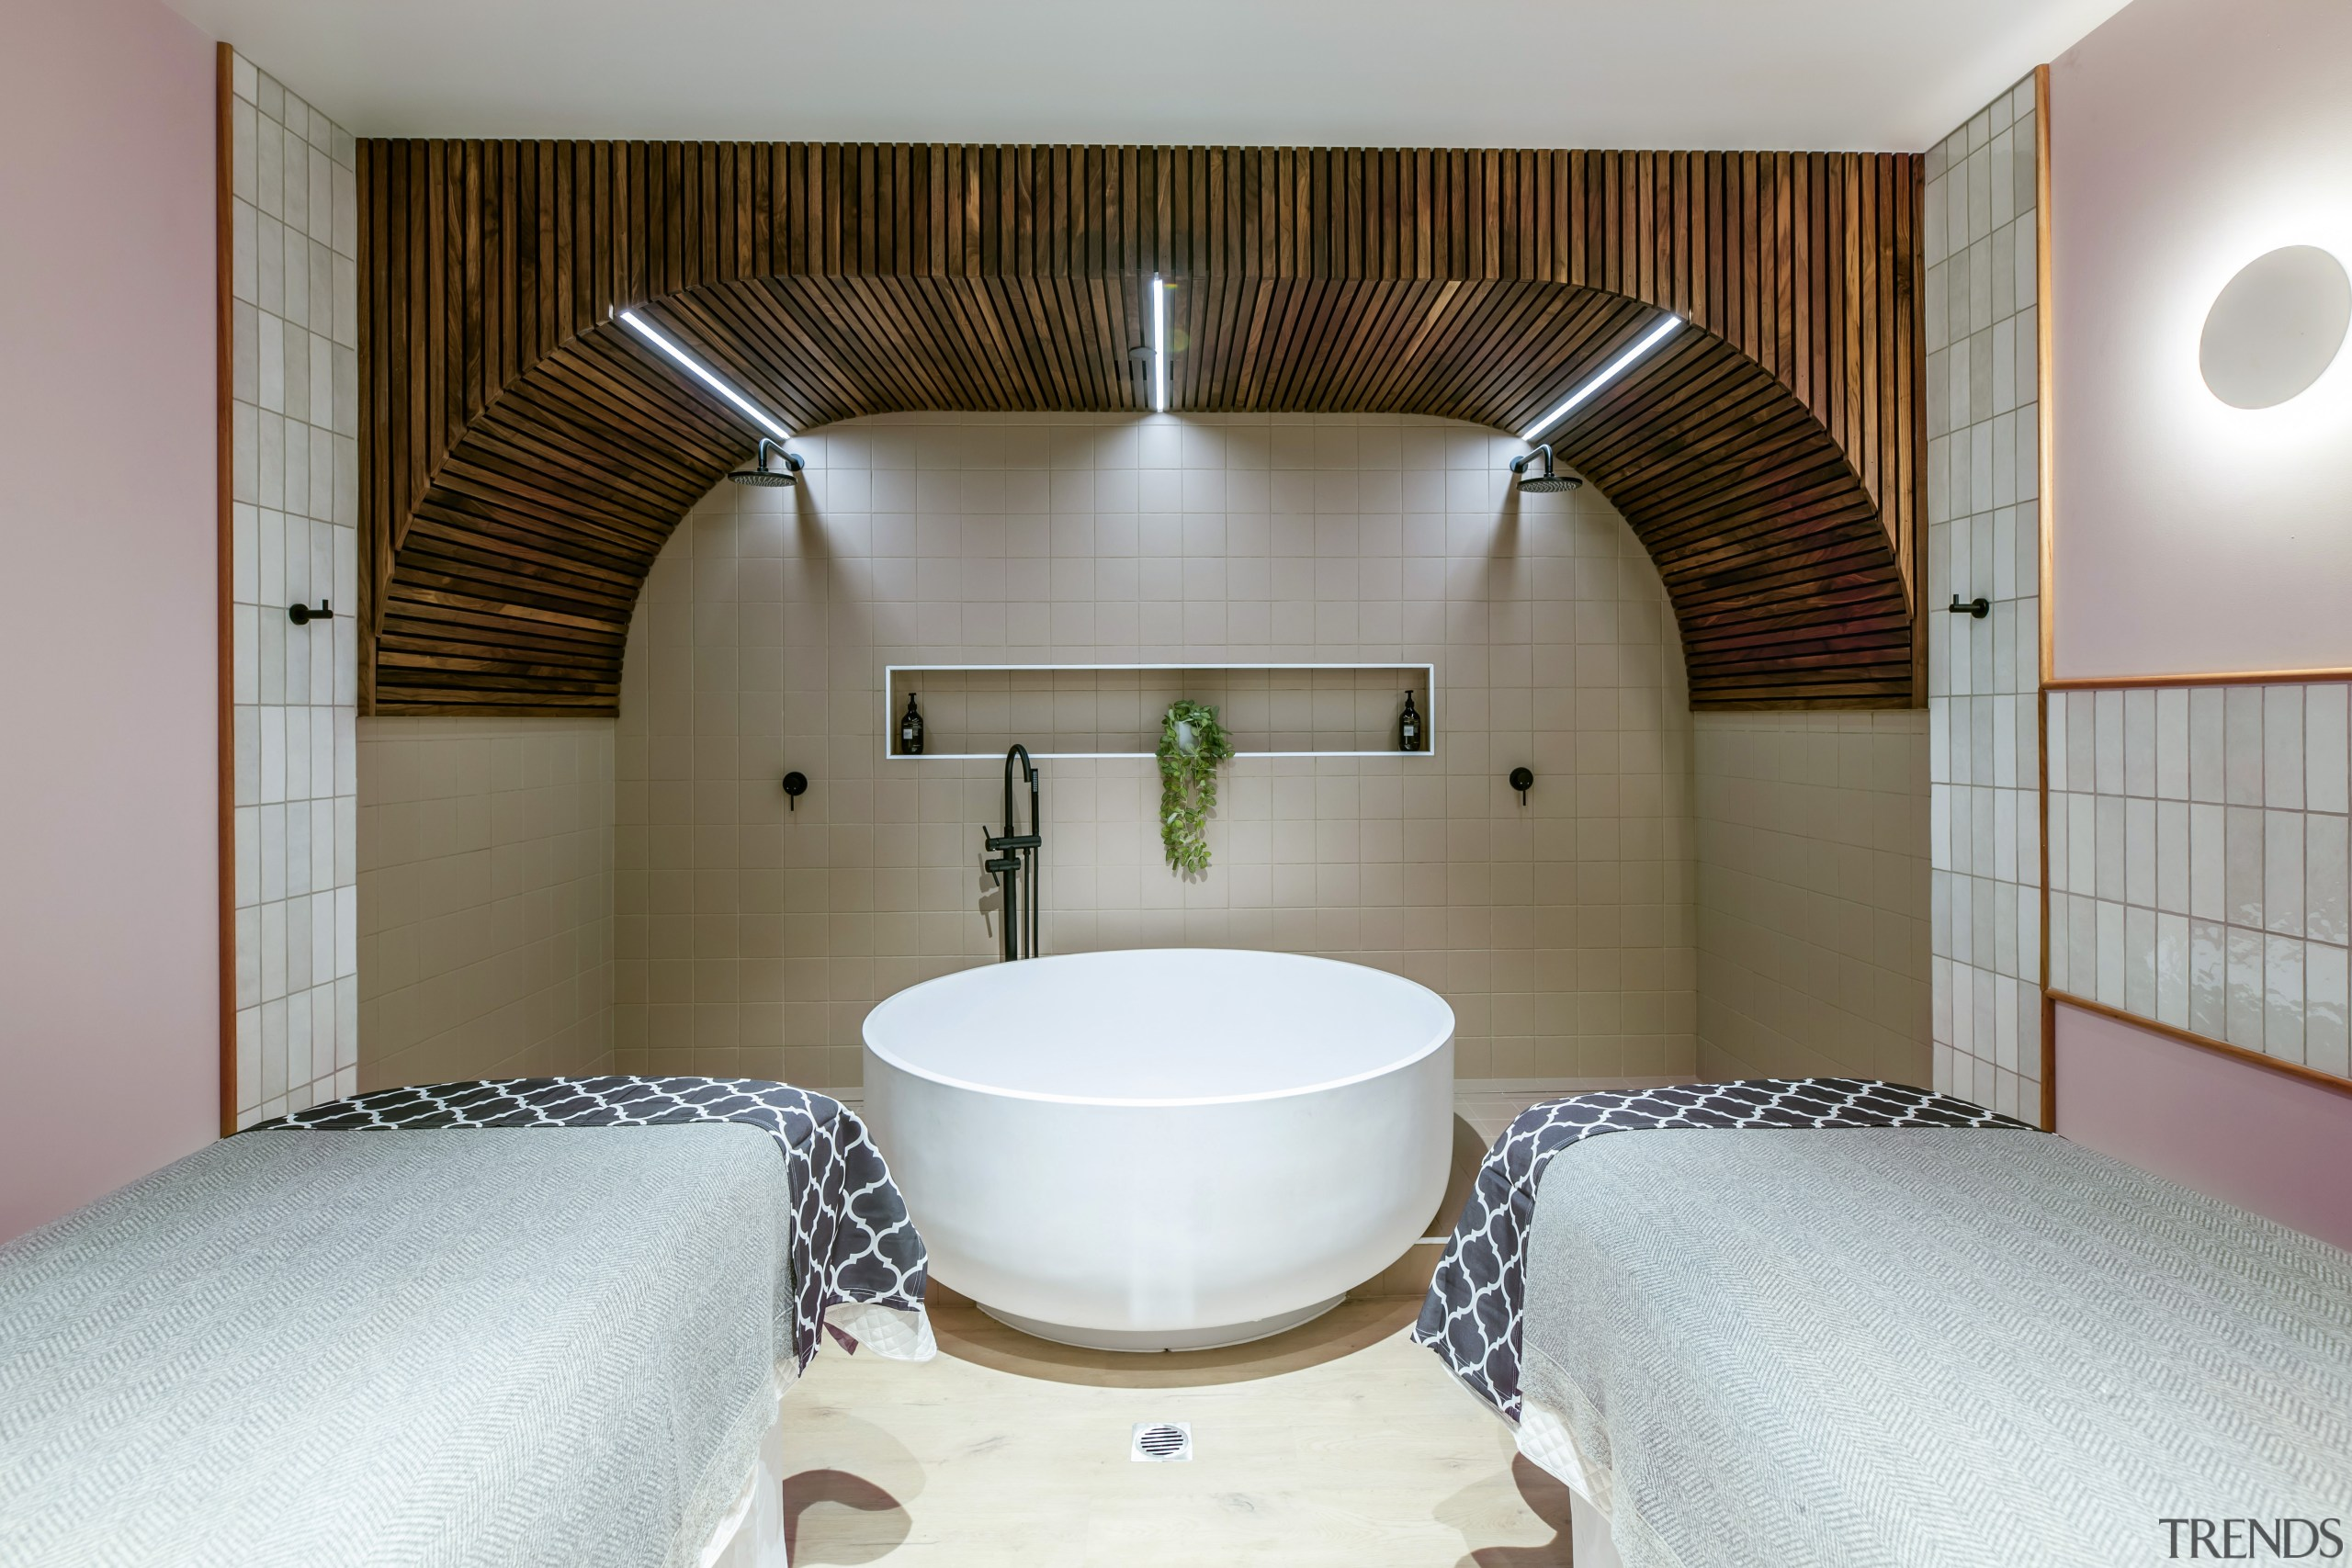 The Moss Spa includes a variety of options, architecture, Spa, Moss Spa, bathtub, Sudima Hotel,  Christchurch, Ignite Architects